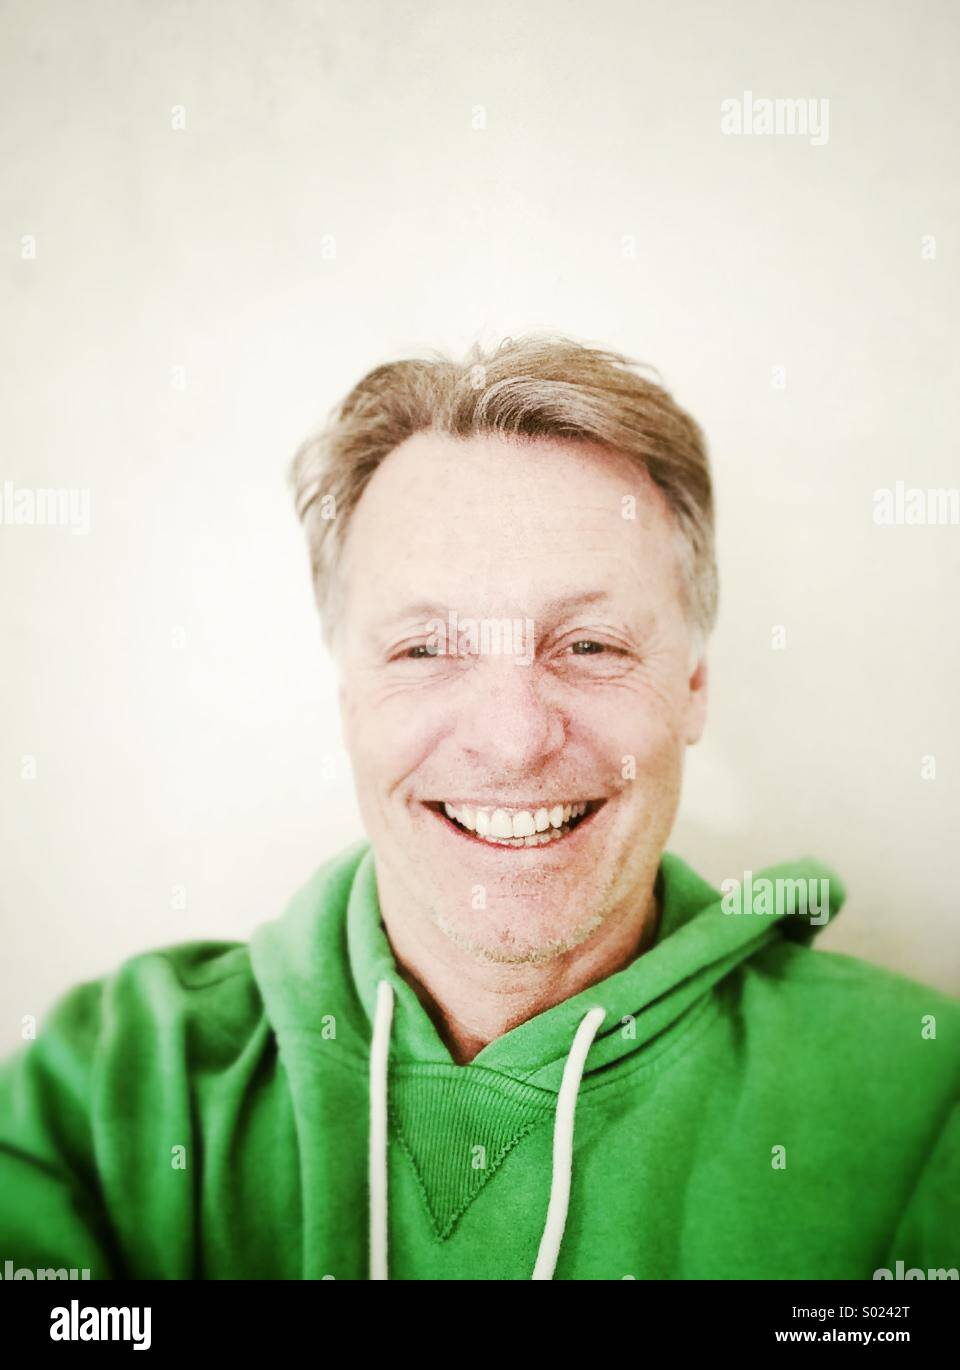 Happy smiling mature man in his forties wearing a green hooded top. - Stock Image